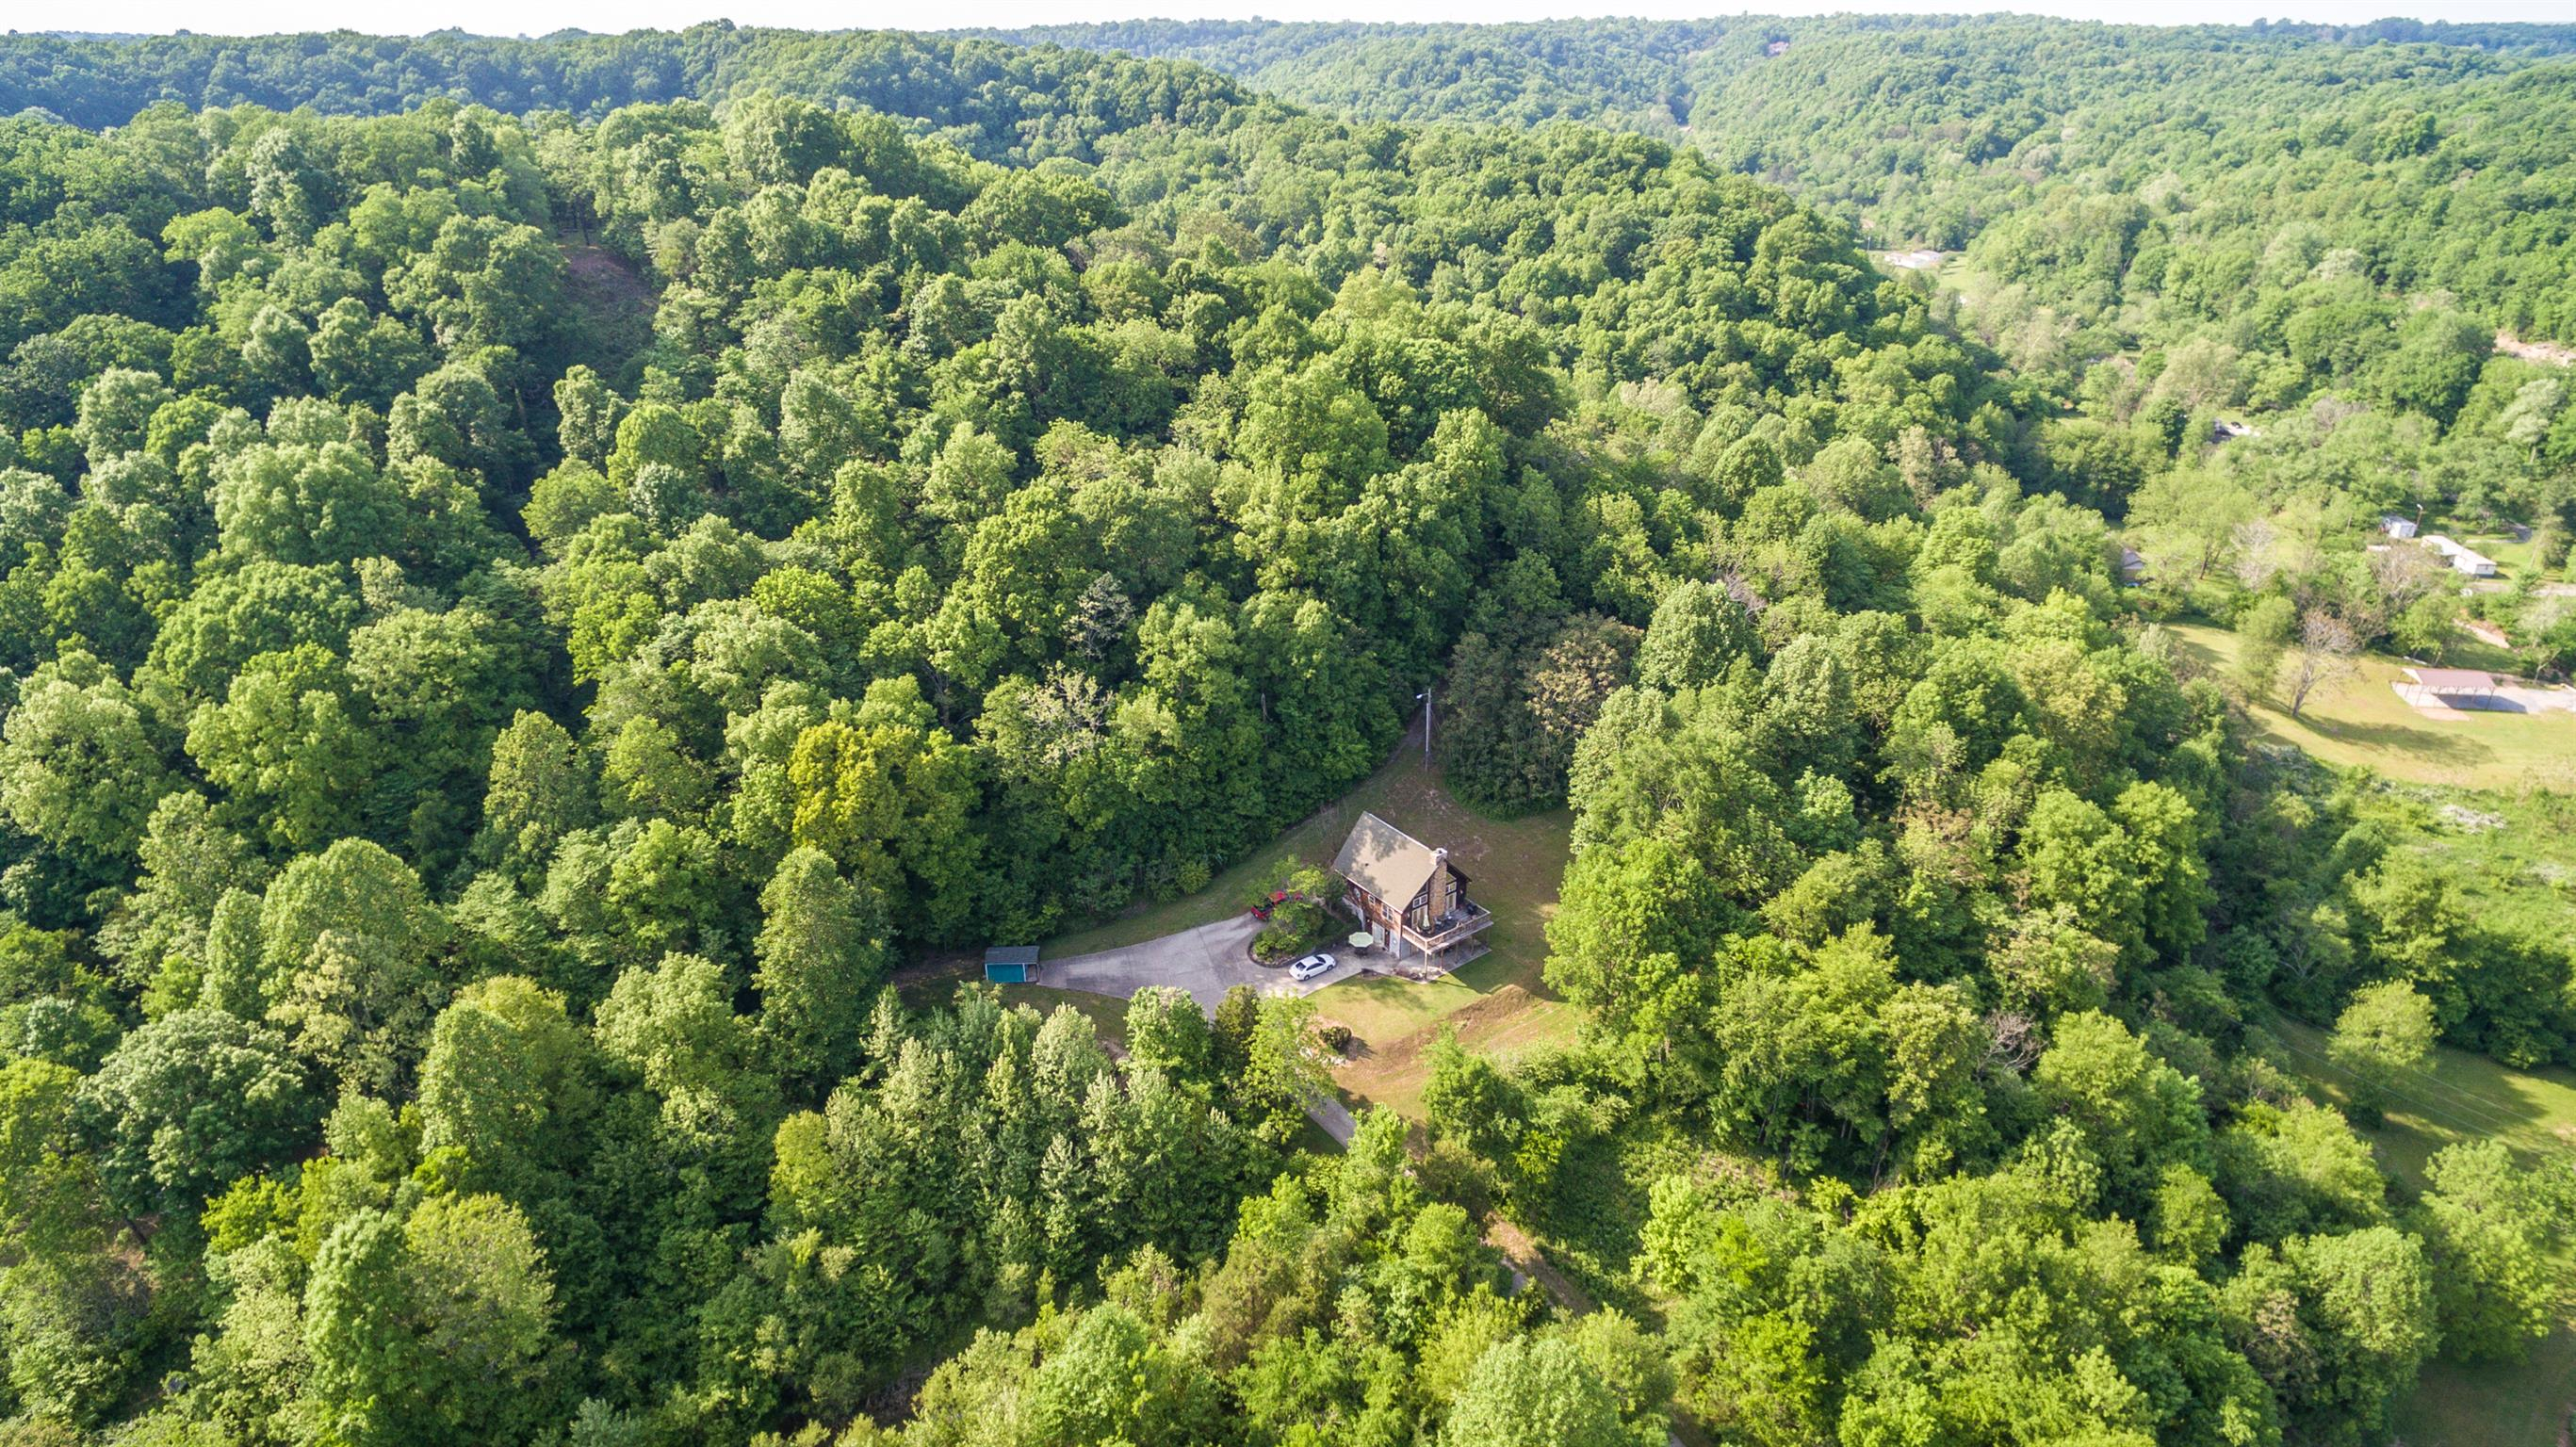 2366 Baker Rd, Goodlettsville in Davidson County County, TN 37072 Home for Sale